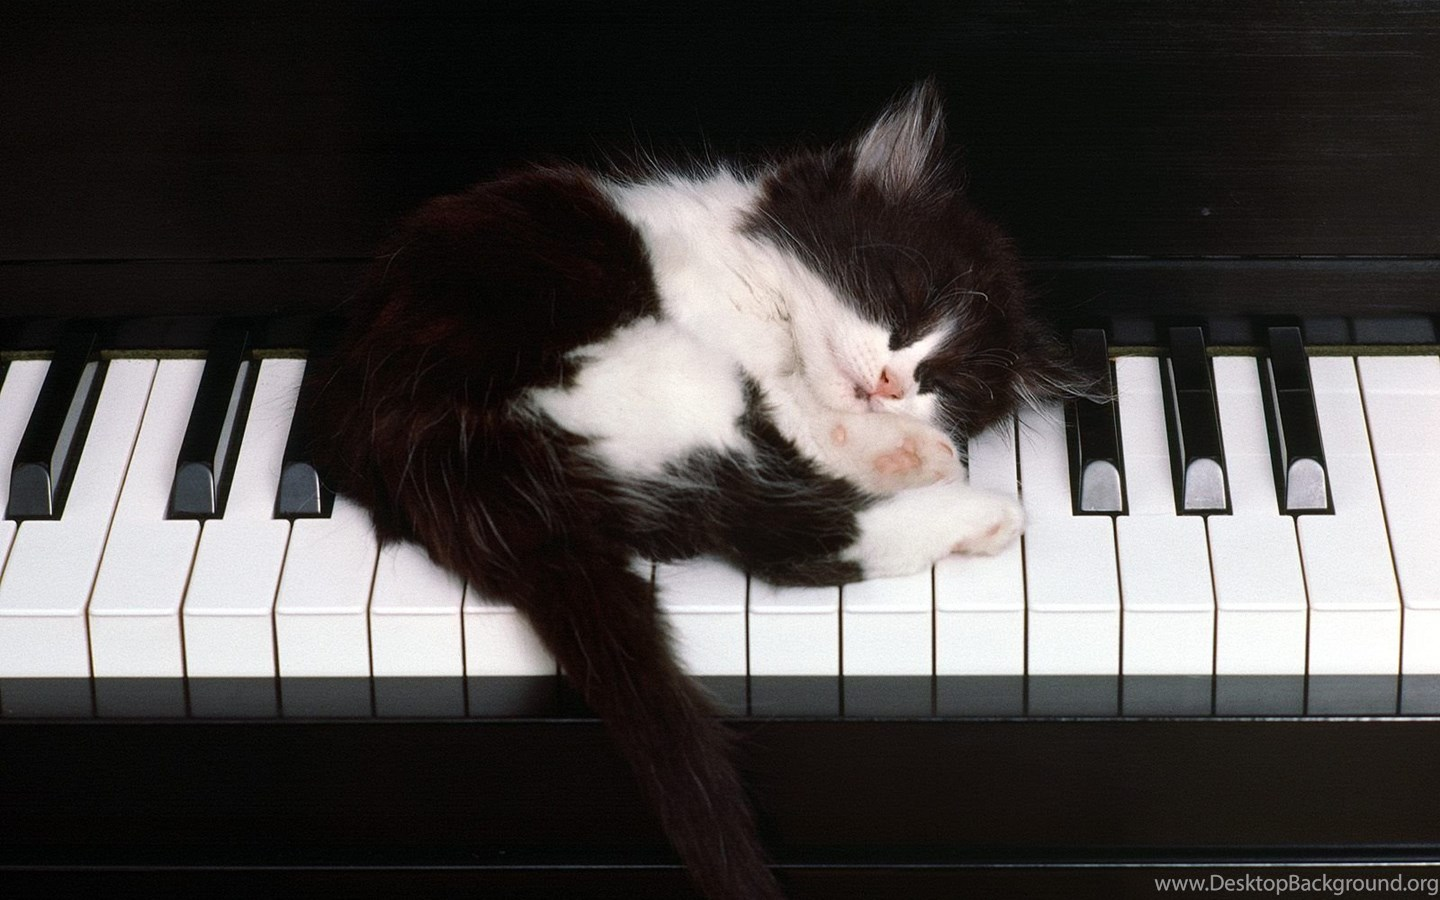 Wallpapers Piano Mac Cats Love Music Animals Play At Hd Backgrounds Desktop Background